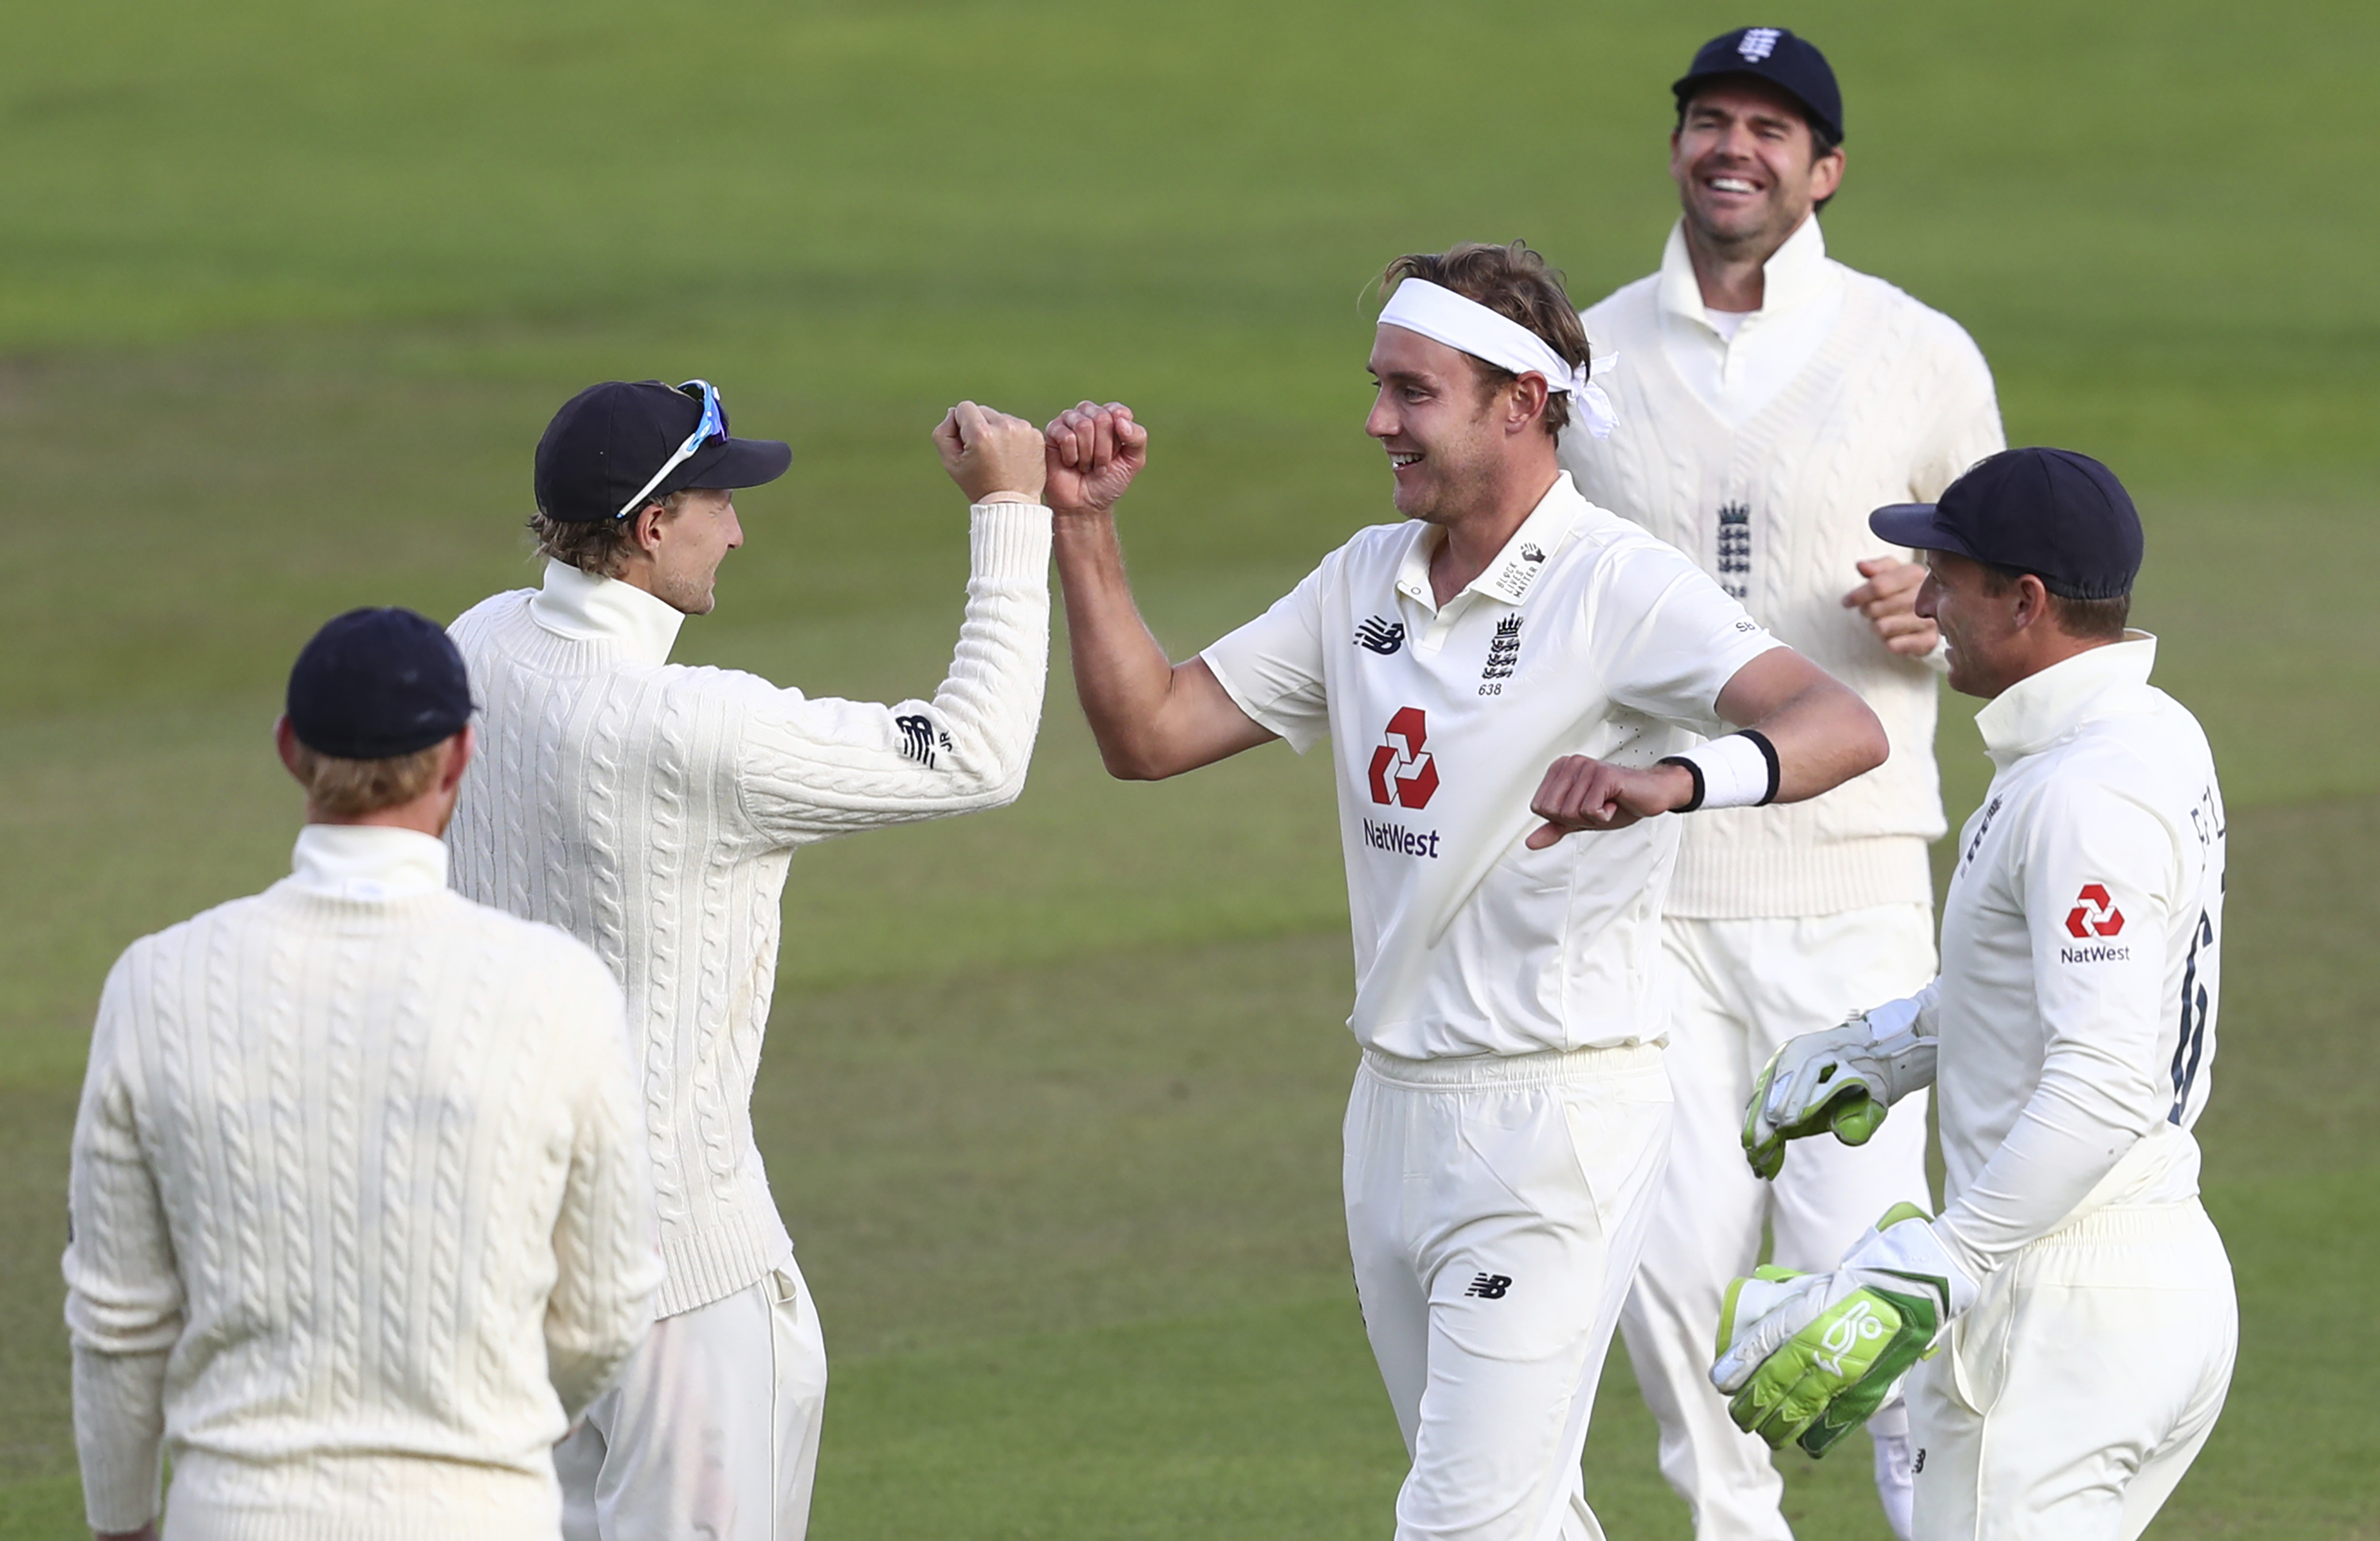 England's Stuart Broad, center, celebrates with teammates the dismissal of West Indies' John Campbell during the third day of the third cricket Test match between England and West Indies at Old Trafford in Manchester, England, Sunday, July 26, 2020. (Michael Steele/Pool via AP)